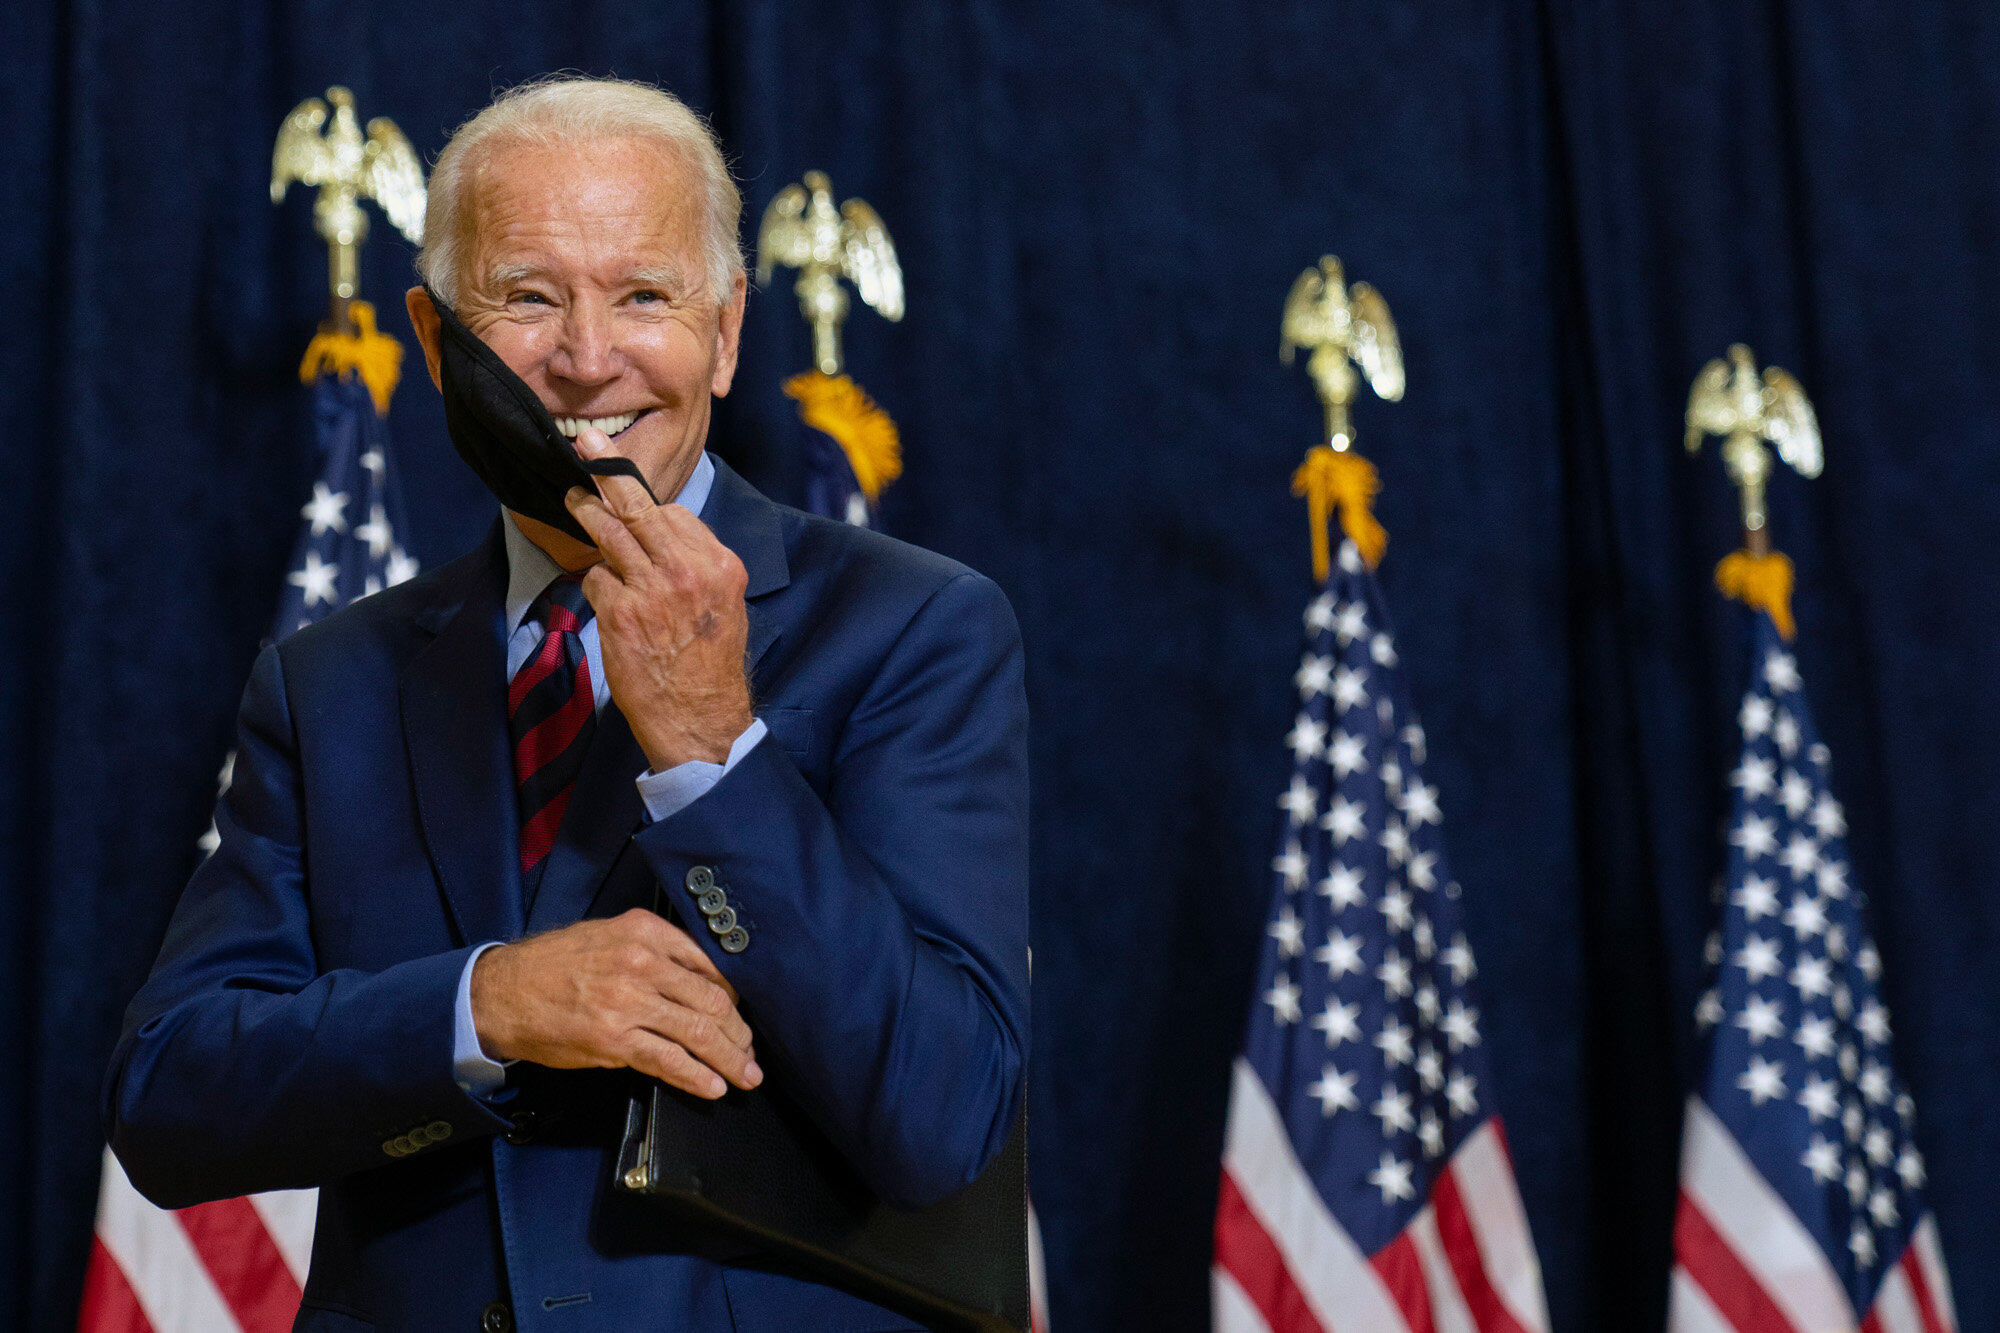 Democratic presidential candidate former Vice President Joe Biden smiles as he puts on his face mask after speaking to media in Wilmington, Del., on Sept. 4, 2020. (AP Photo/Carolyn Kaster)